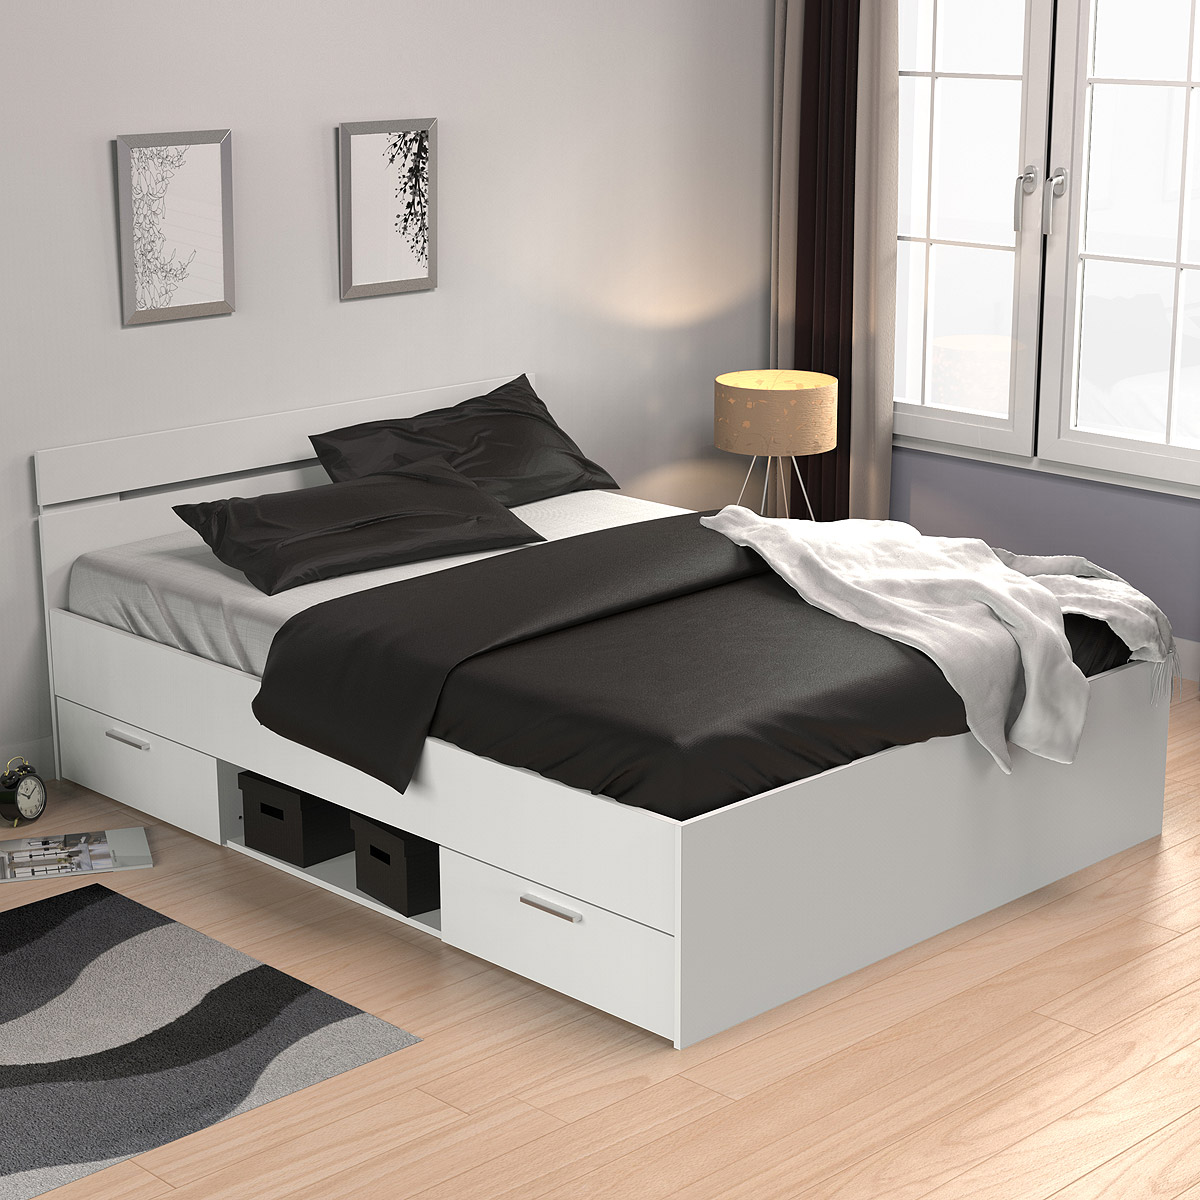 bett michigan jugendzimmerbett g stebett perle wei 140x200 cm ebay. Black Bedroom Furniture Sets. Home Design Ideas